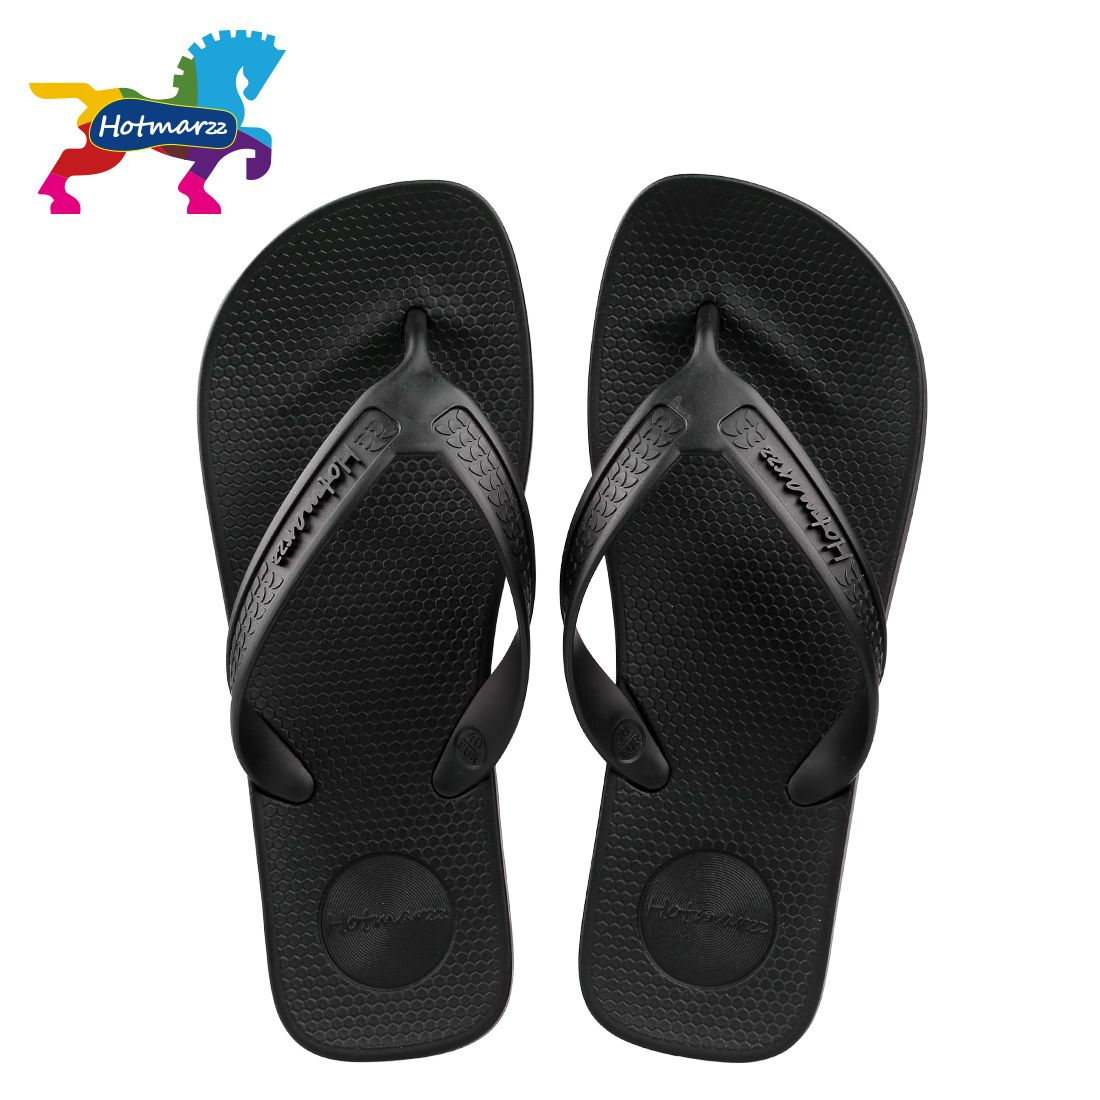 Unisex Non-slip Flip Flops Cute Pick Up Chicks Cool Beach Slippers Sandal